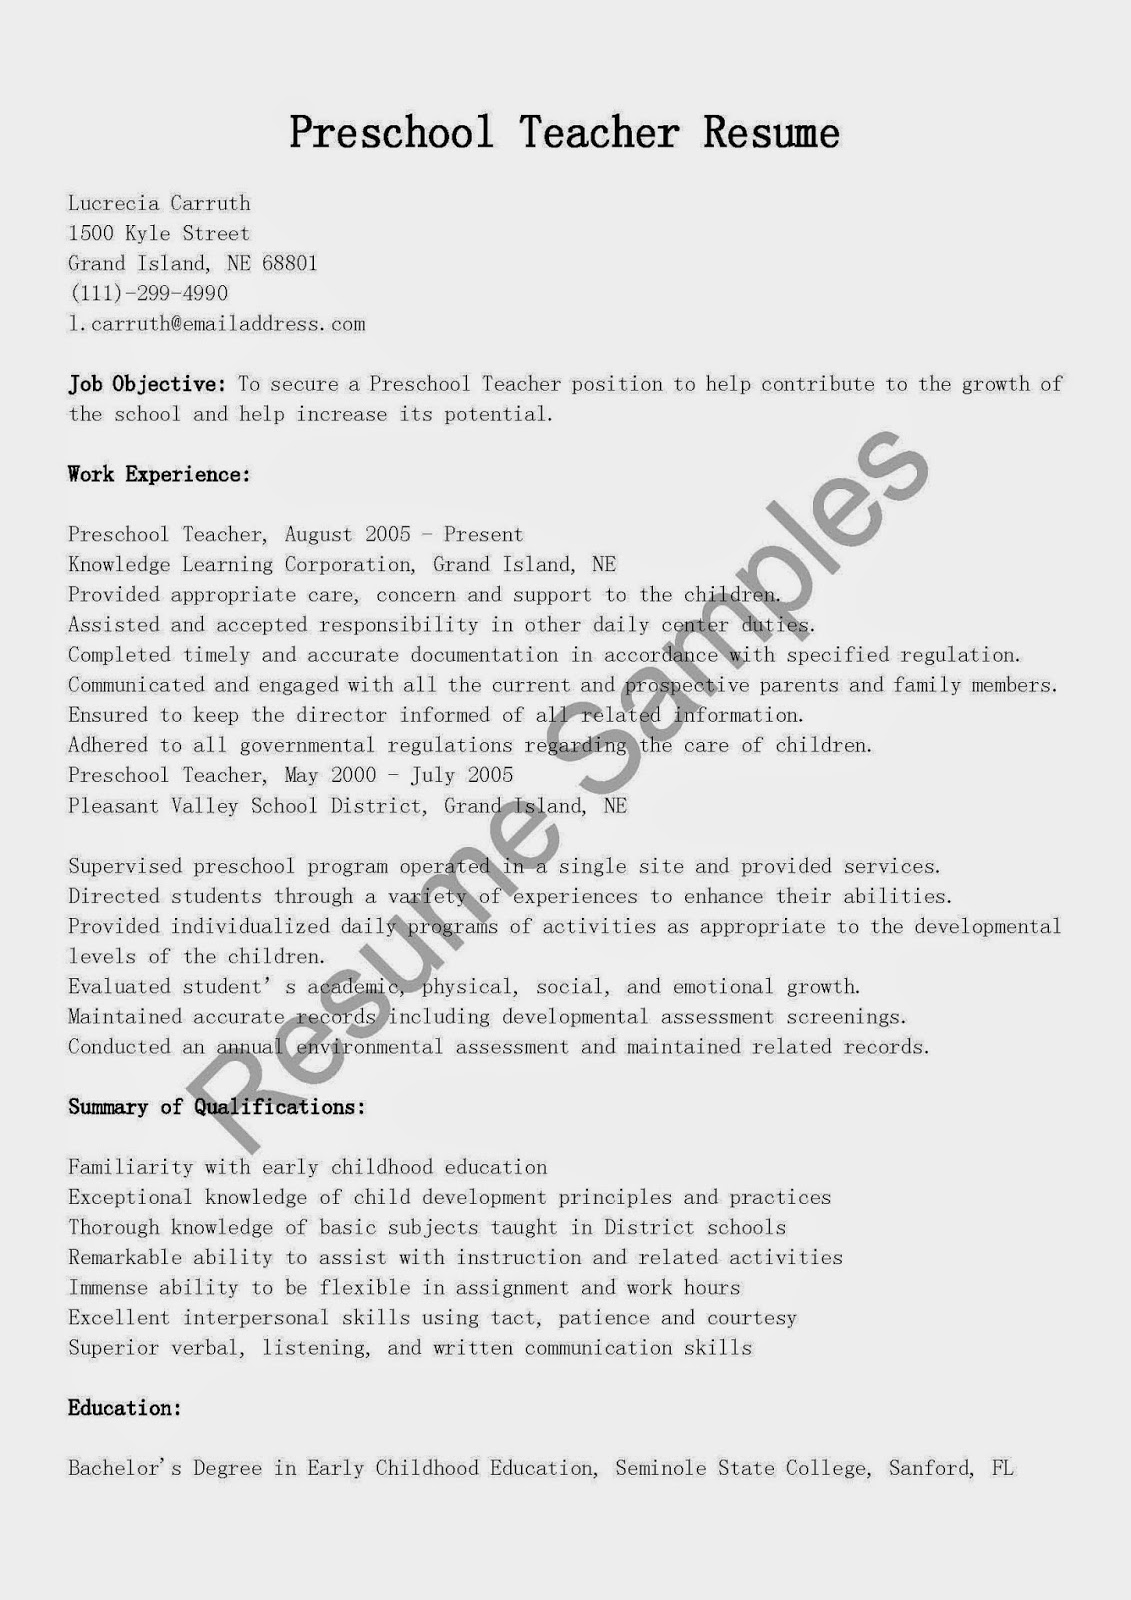 Resume Samples Preschool Teacher Resume Sample